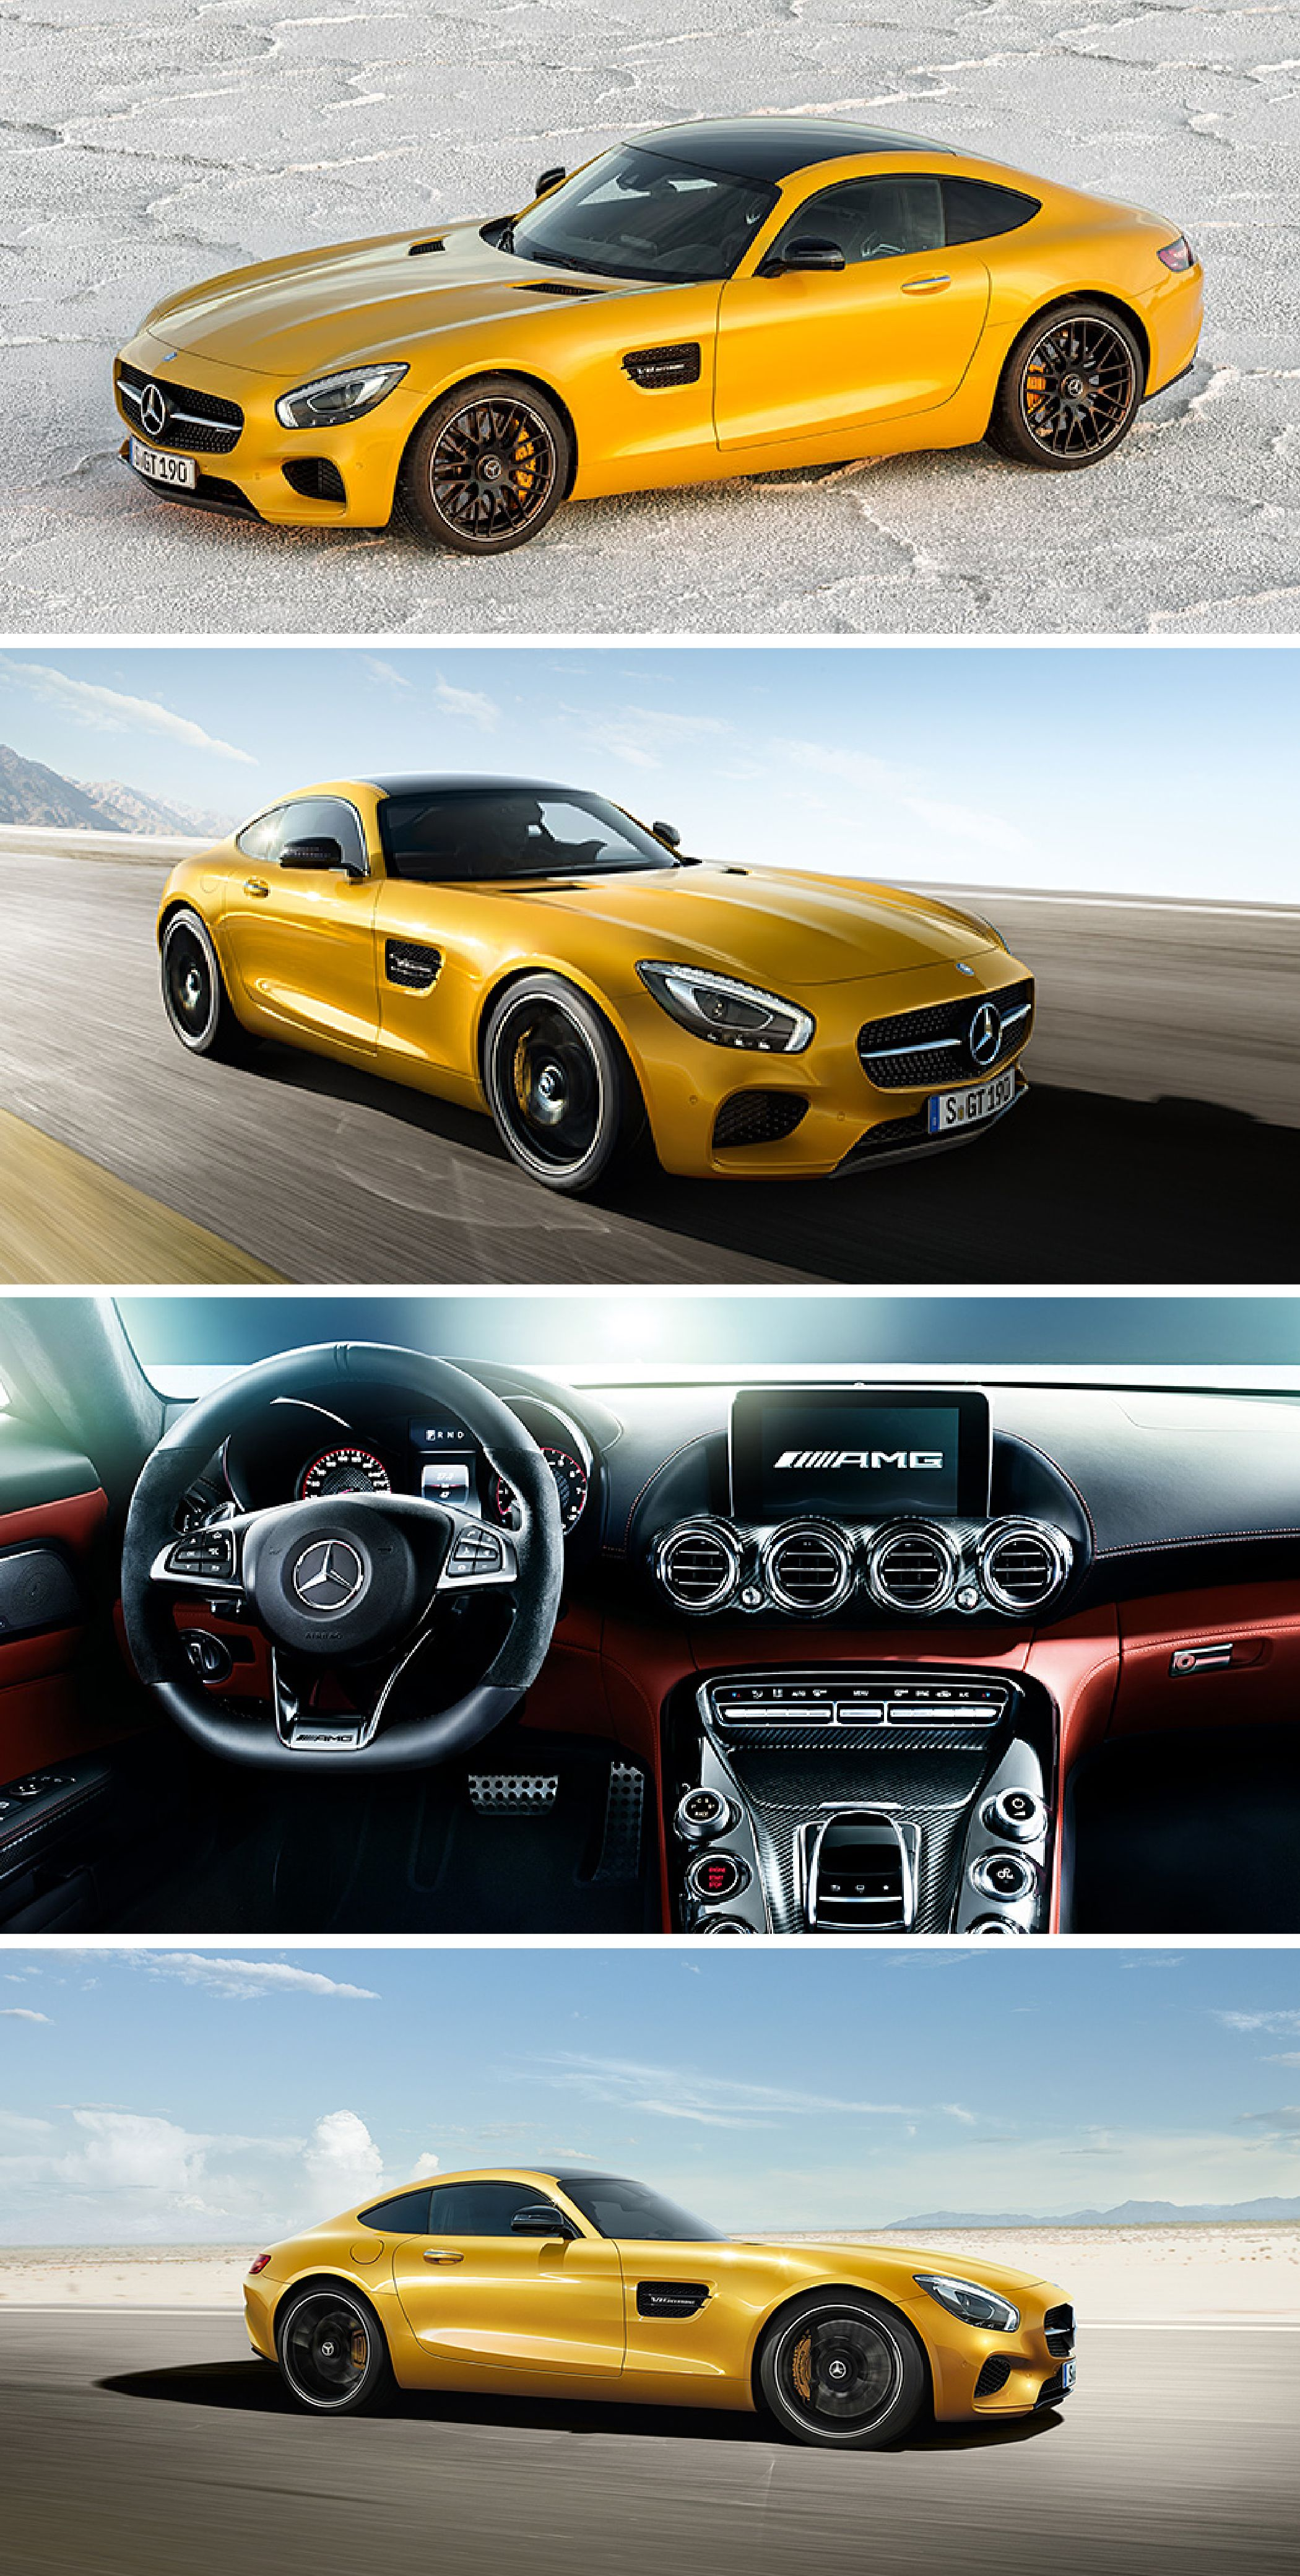 The new Mercedes AMG GT is handcrafted by racers and the driving performance is meant for sports car enthusiasts It delivers on all accounts driving